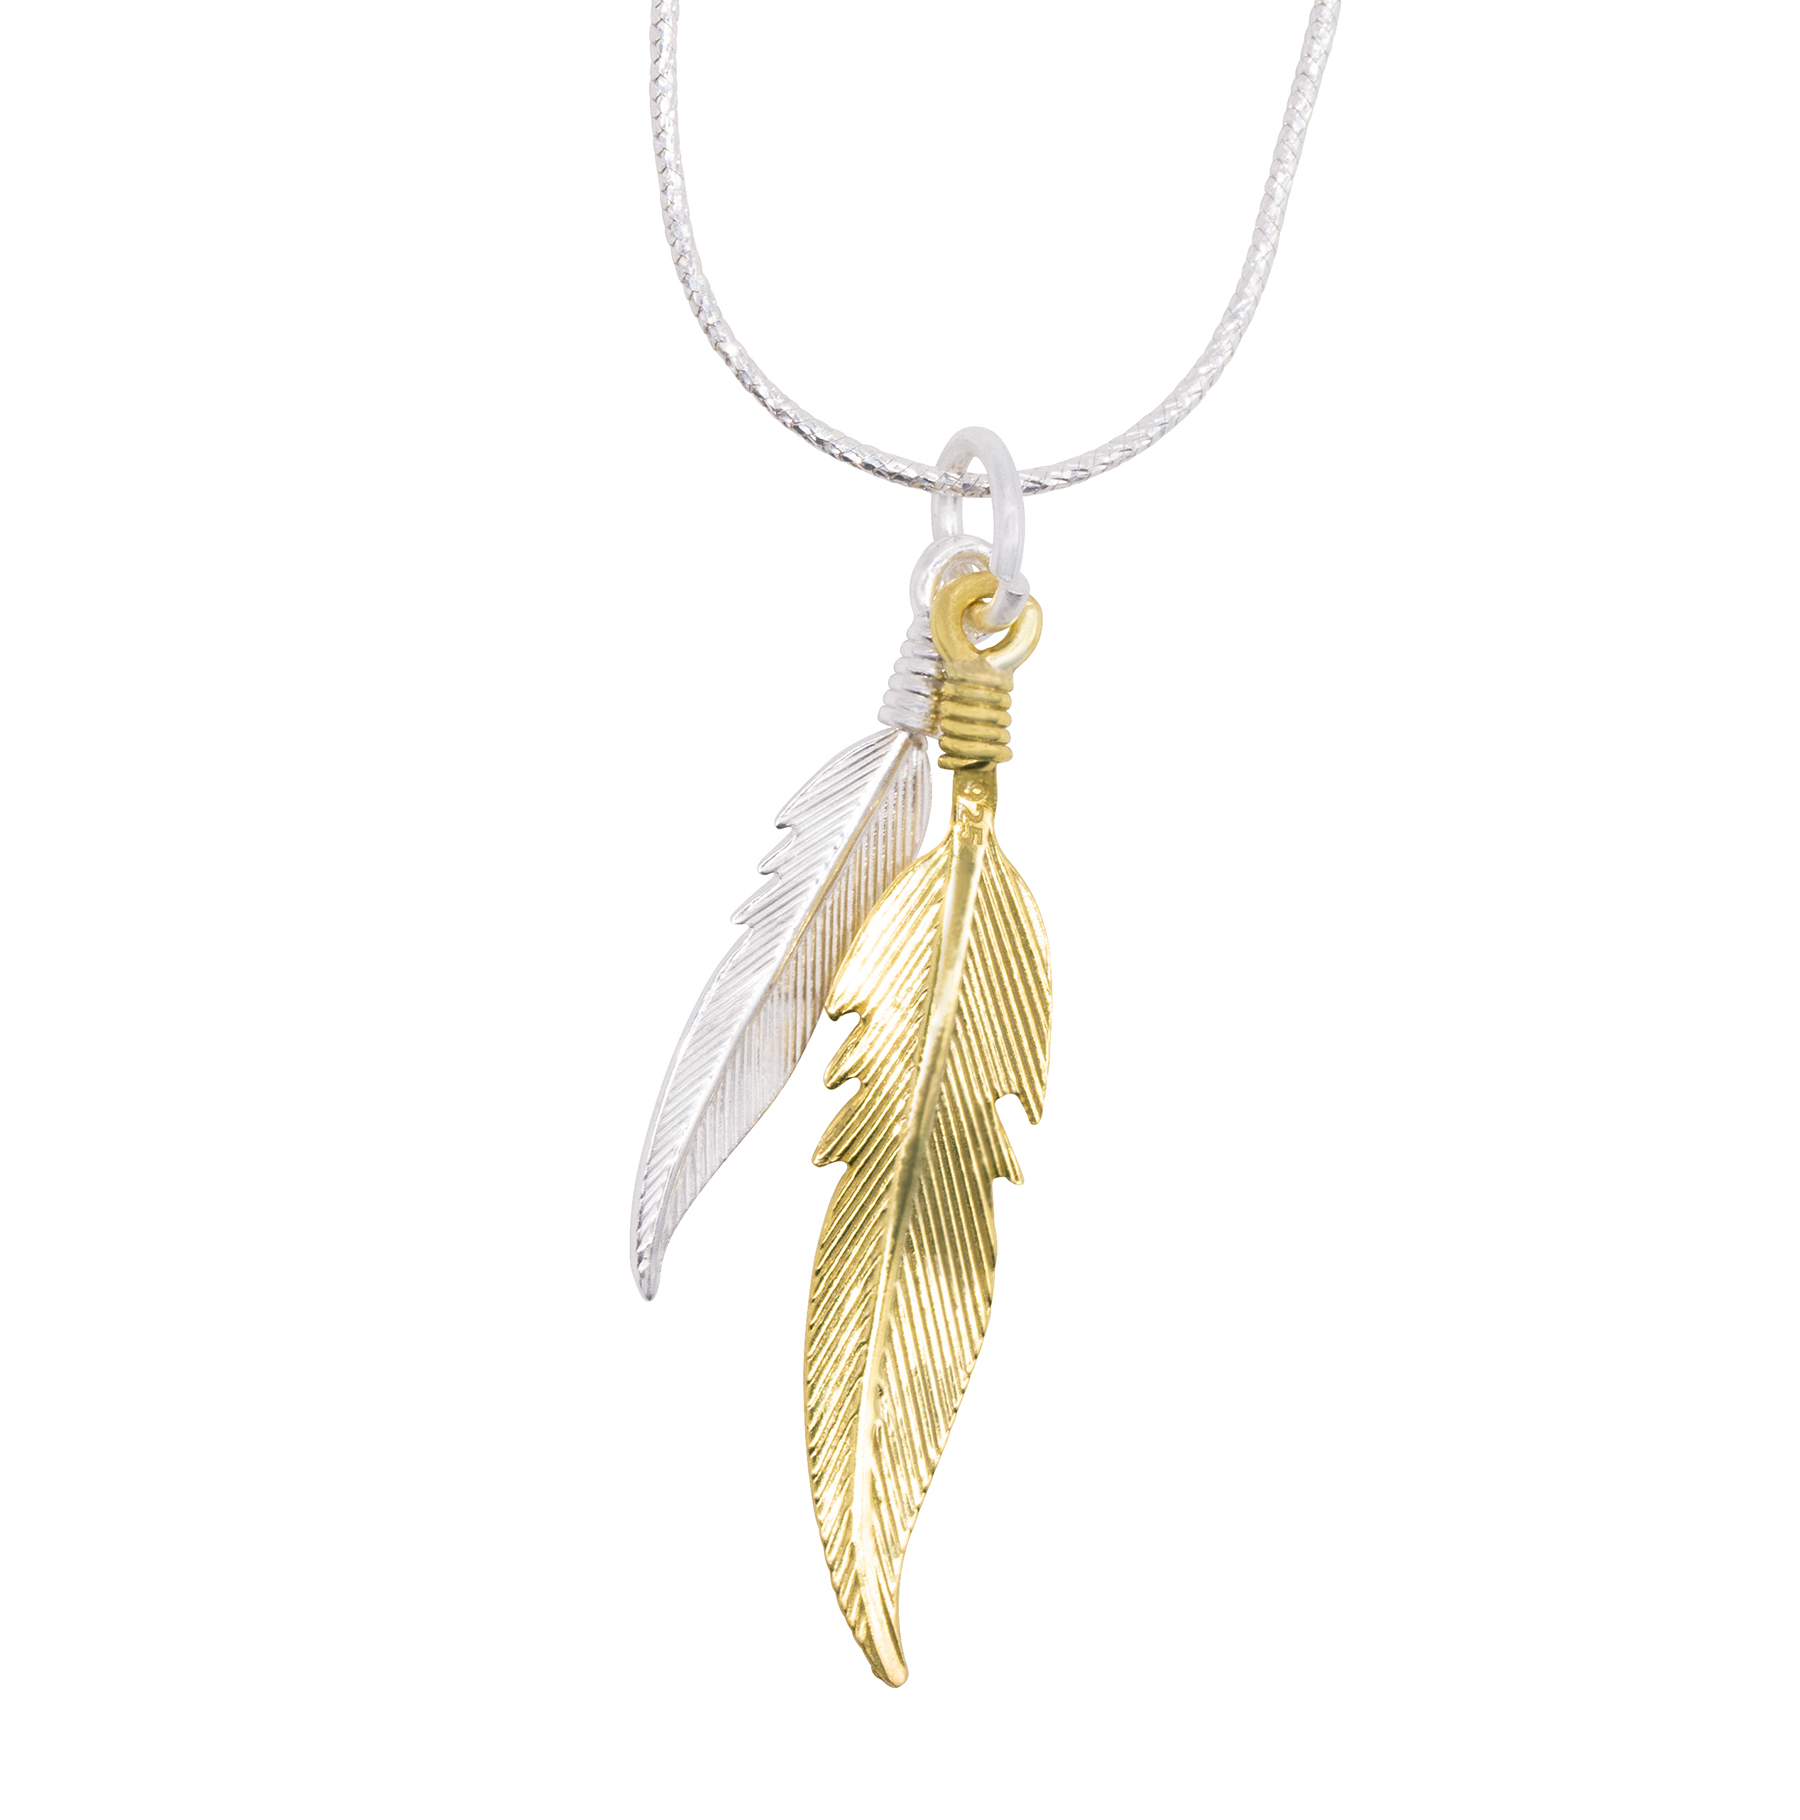 925c precious gold silver feather